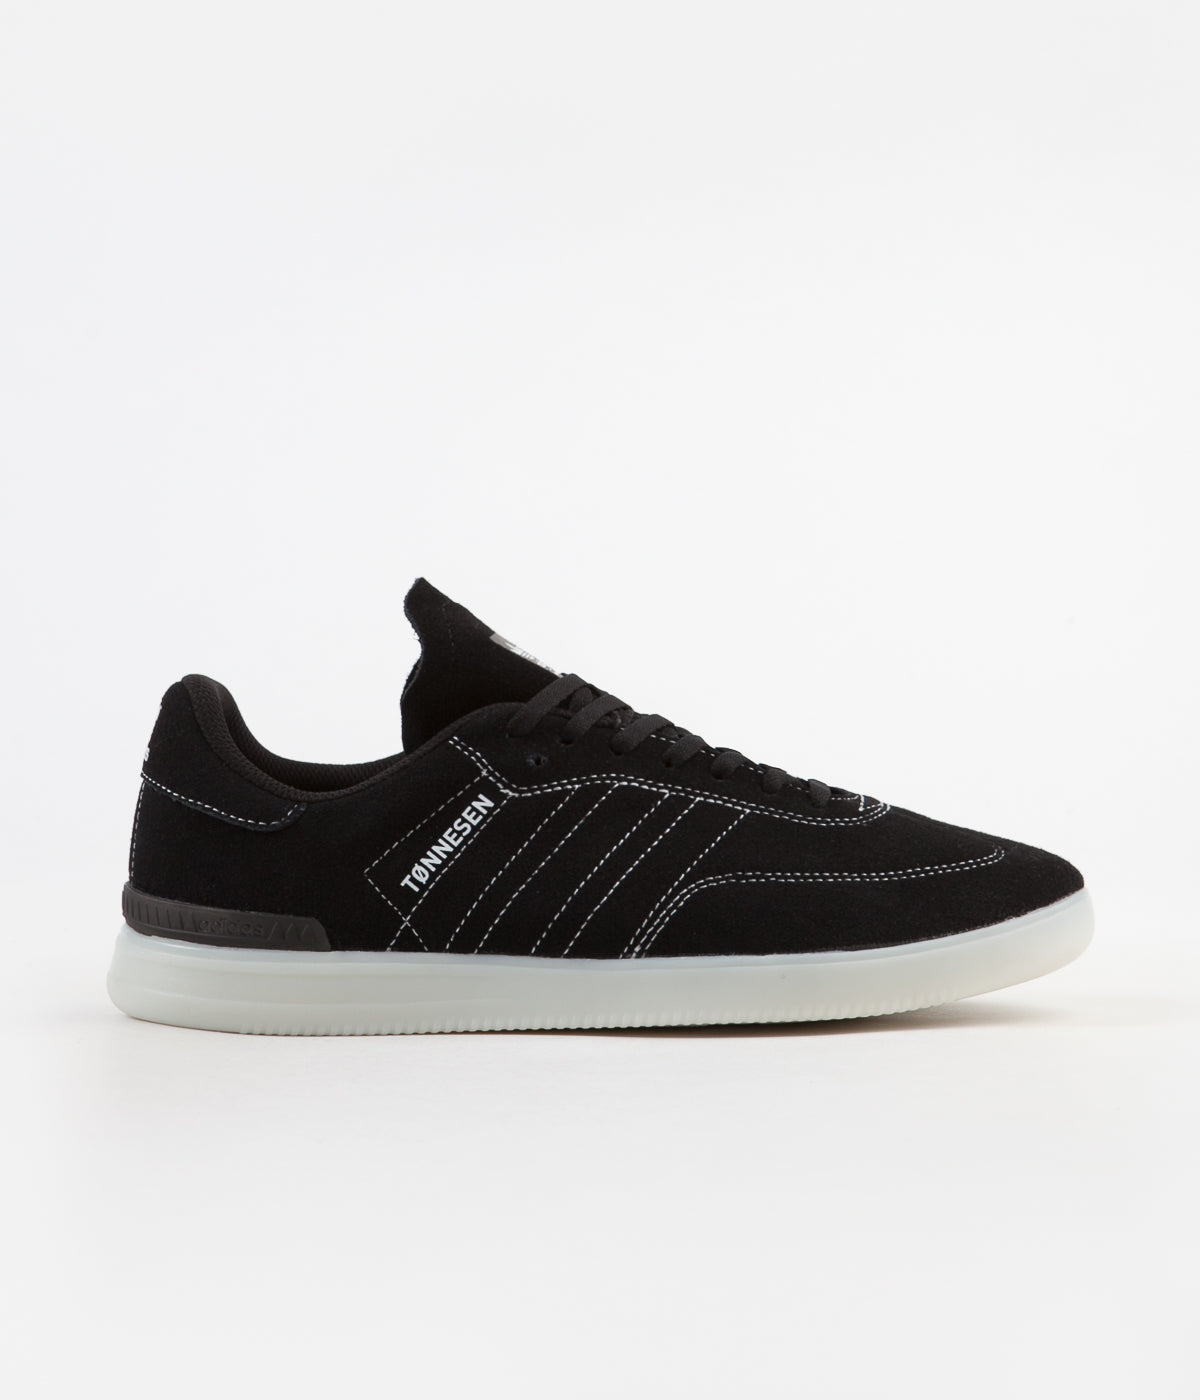 Adidas Samba ADV 'Gustav Tønnesen' Shoes - Core Black / White / Crystal White